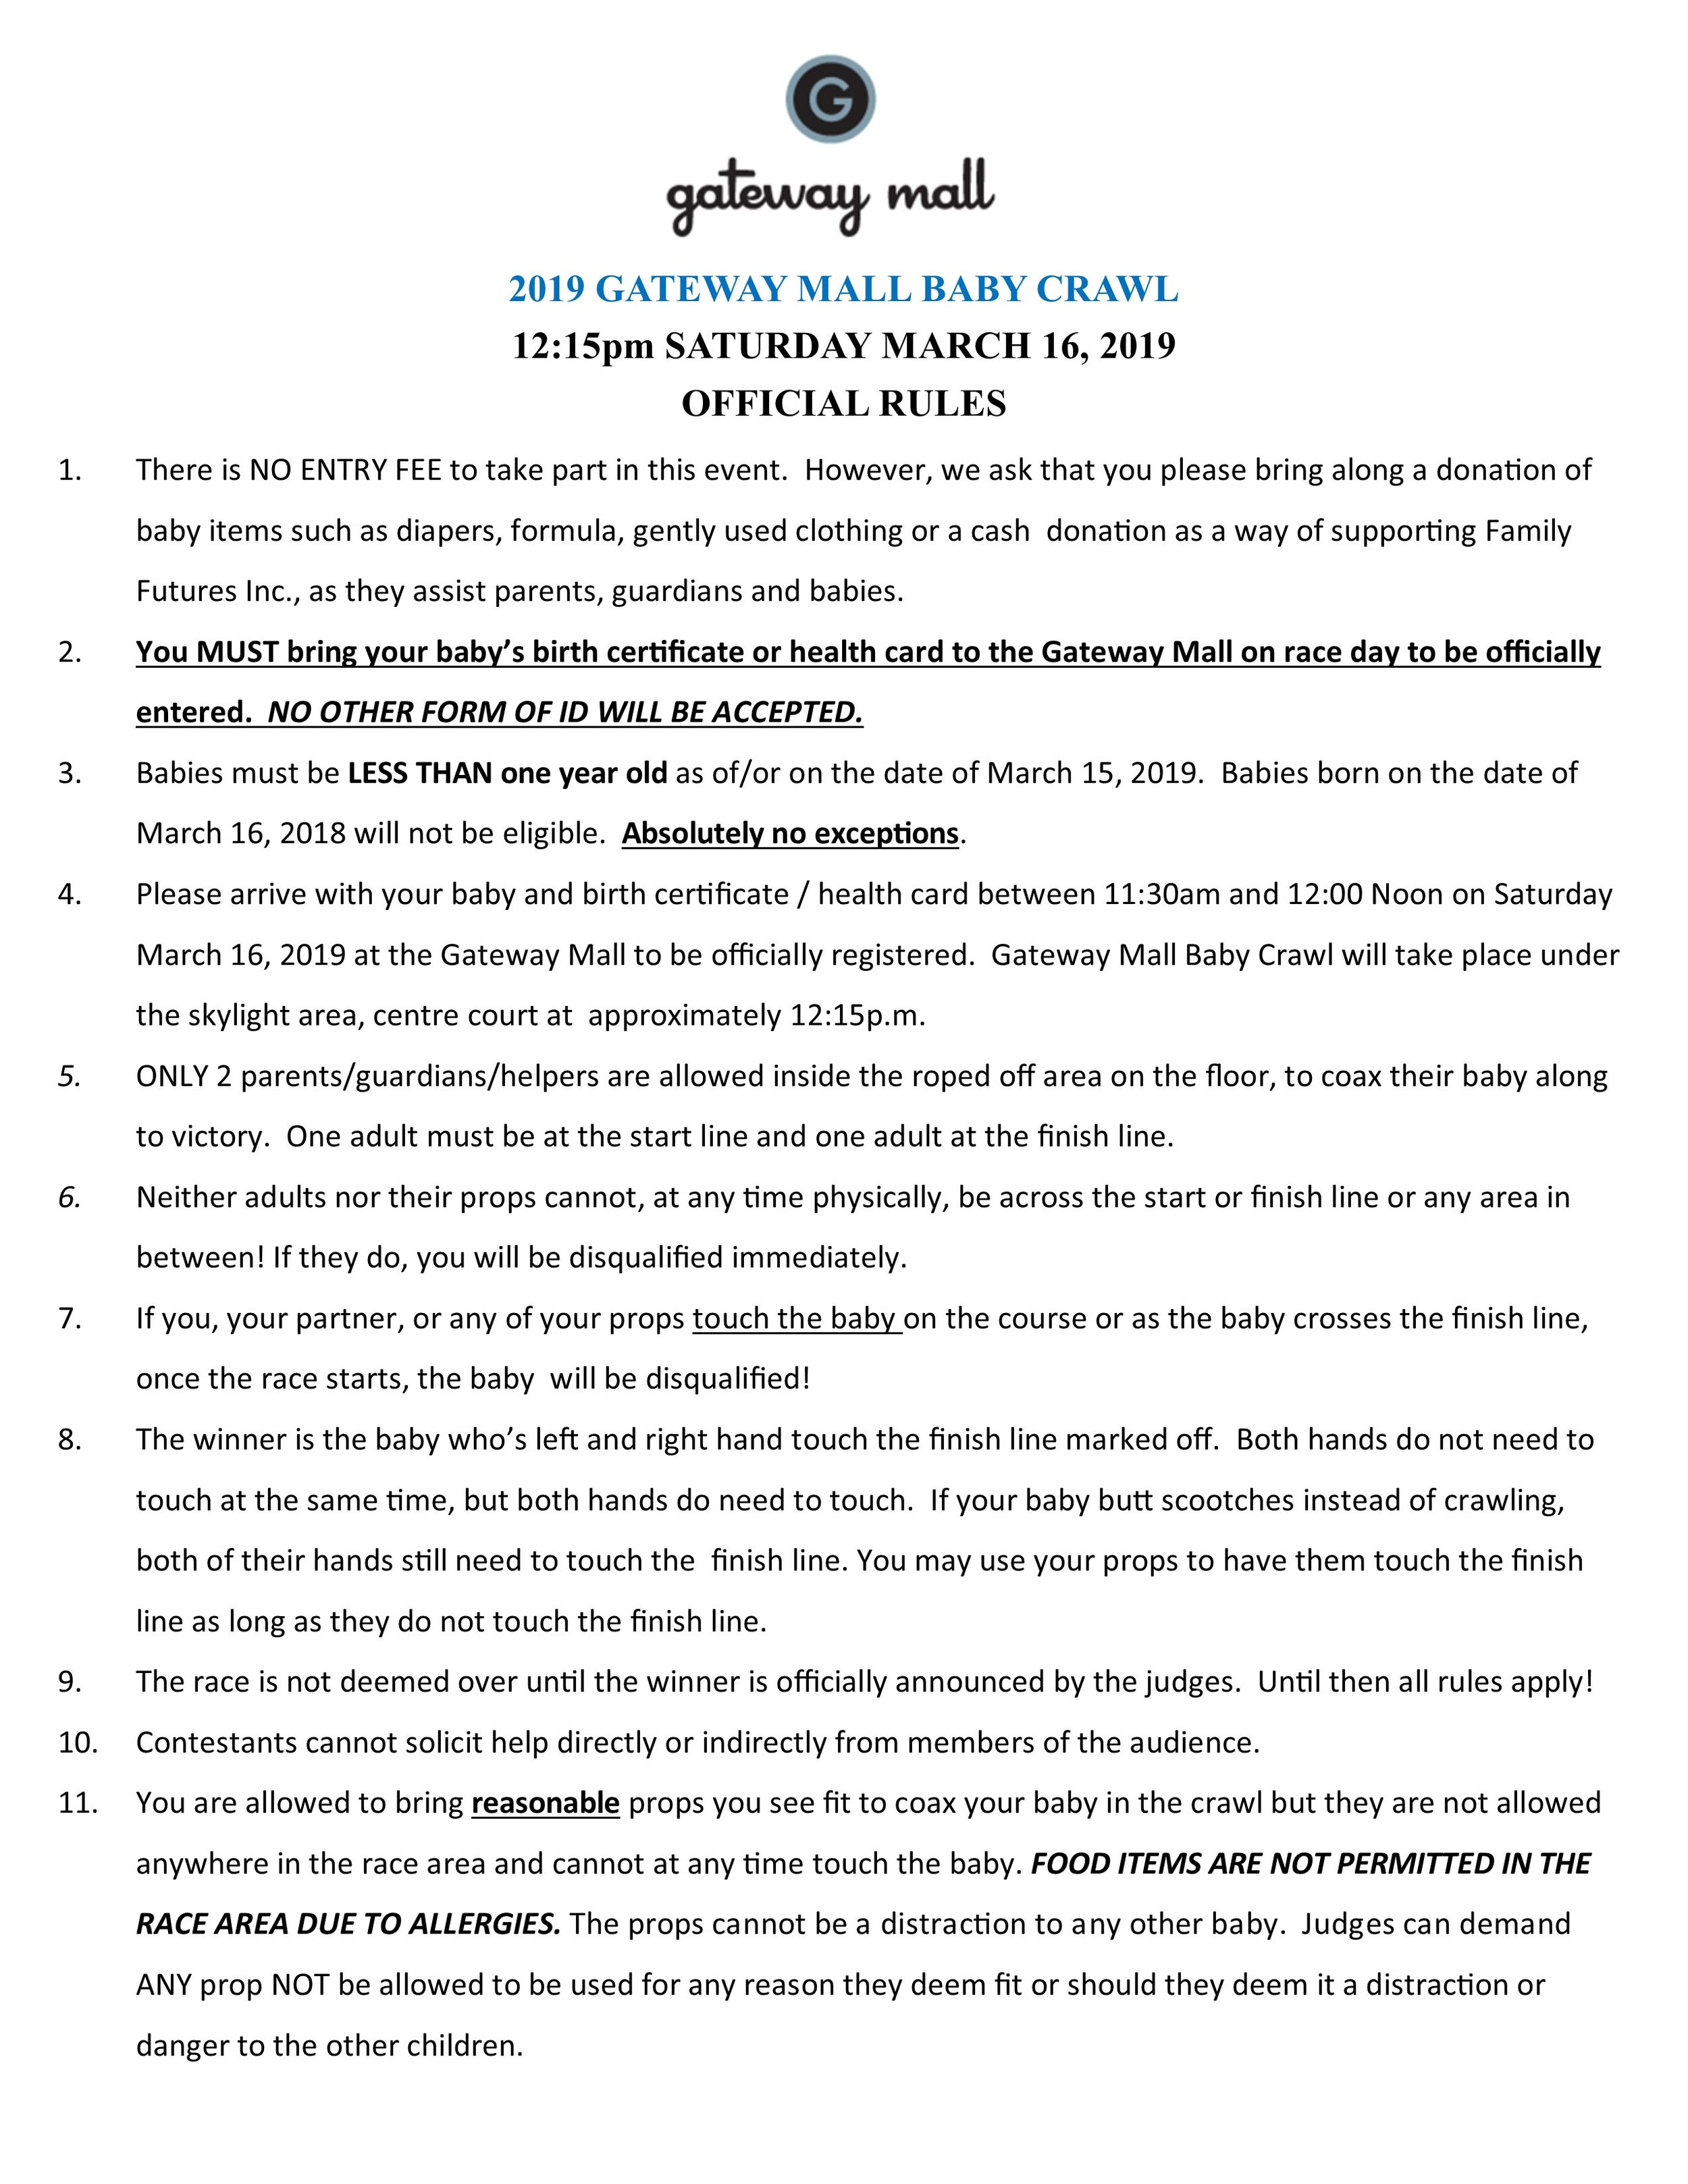 GWM 2019 Baby Crawl  Rules page 1.jpg